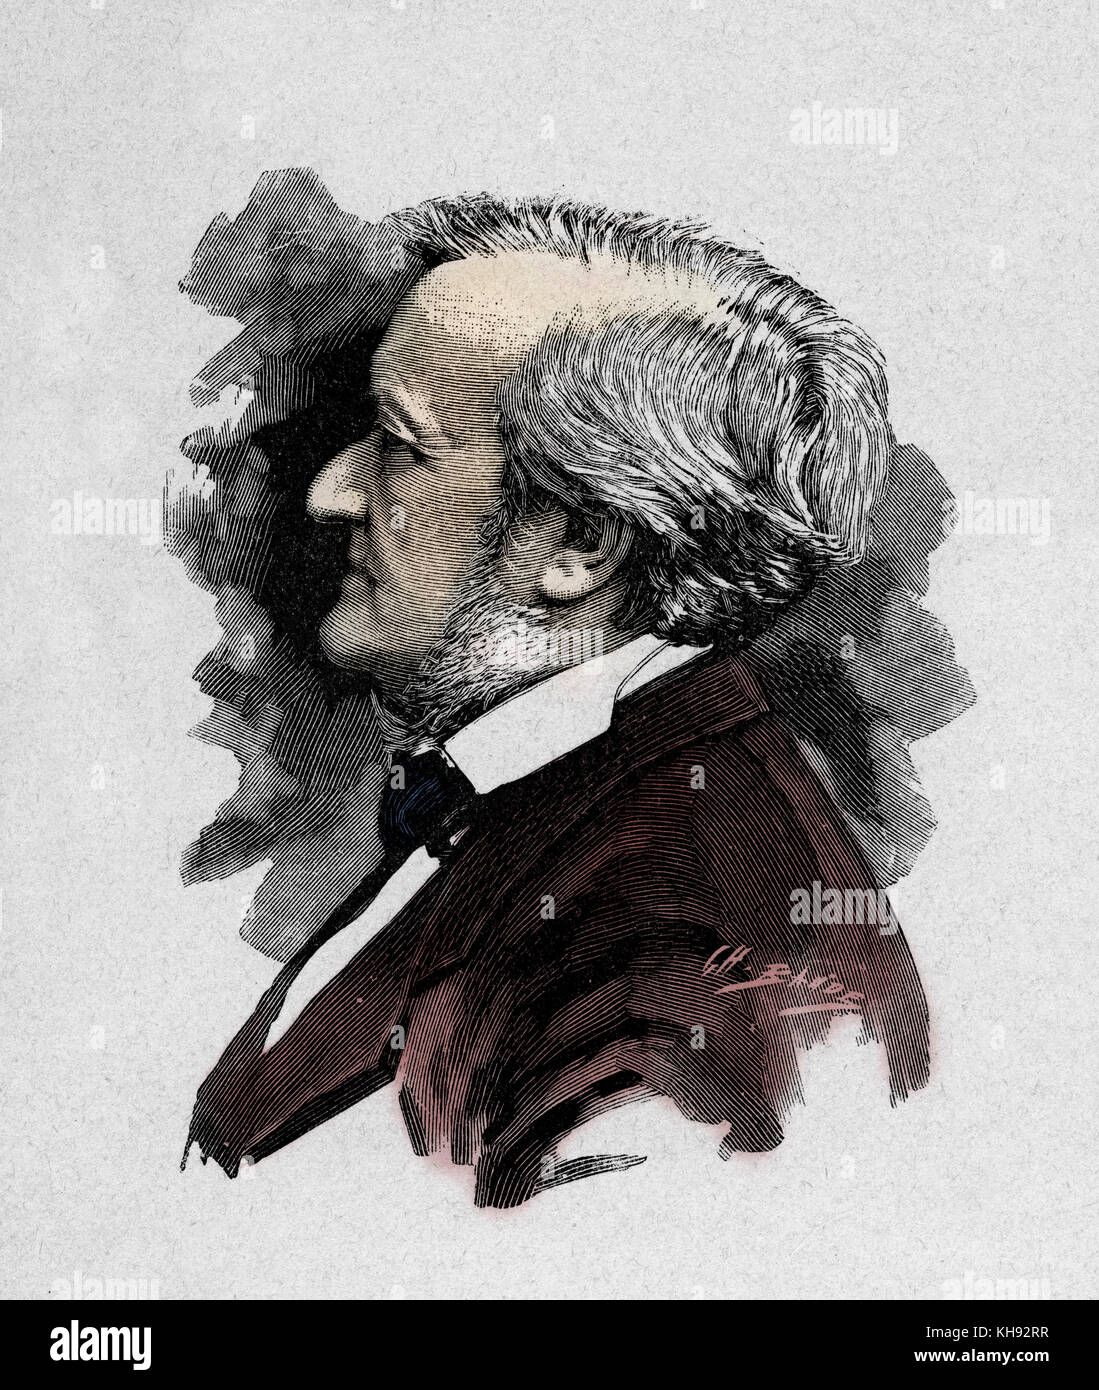 Richard Wagner -  engraving by Baude after photograph by Elliot et Frey, 1877.  RW: German composer & author, - Stock Image